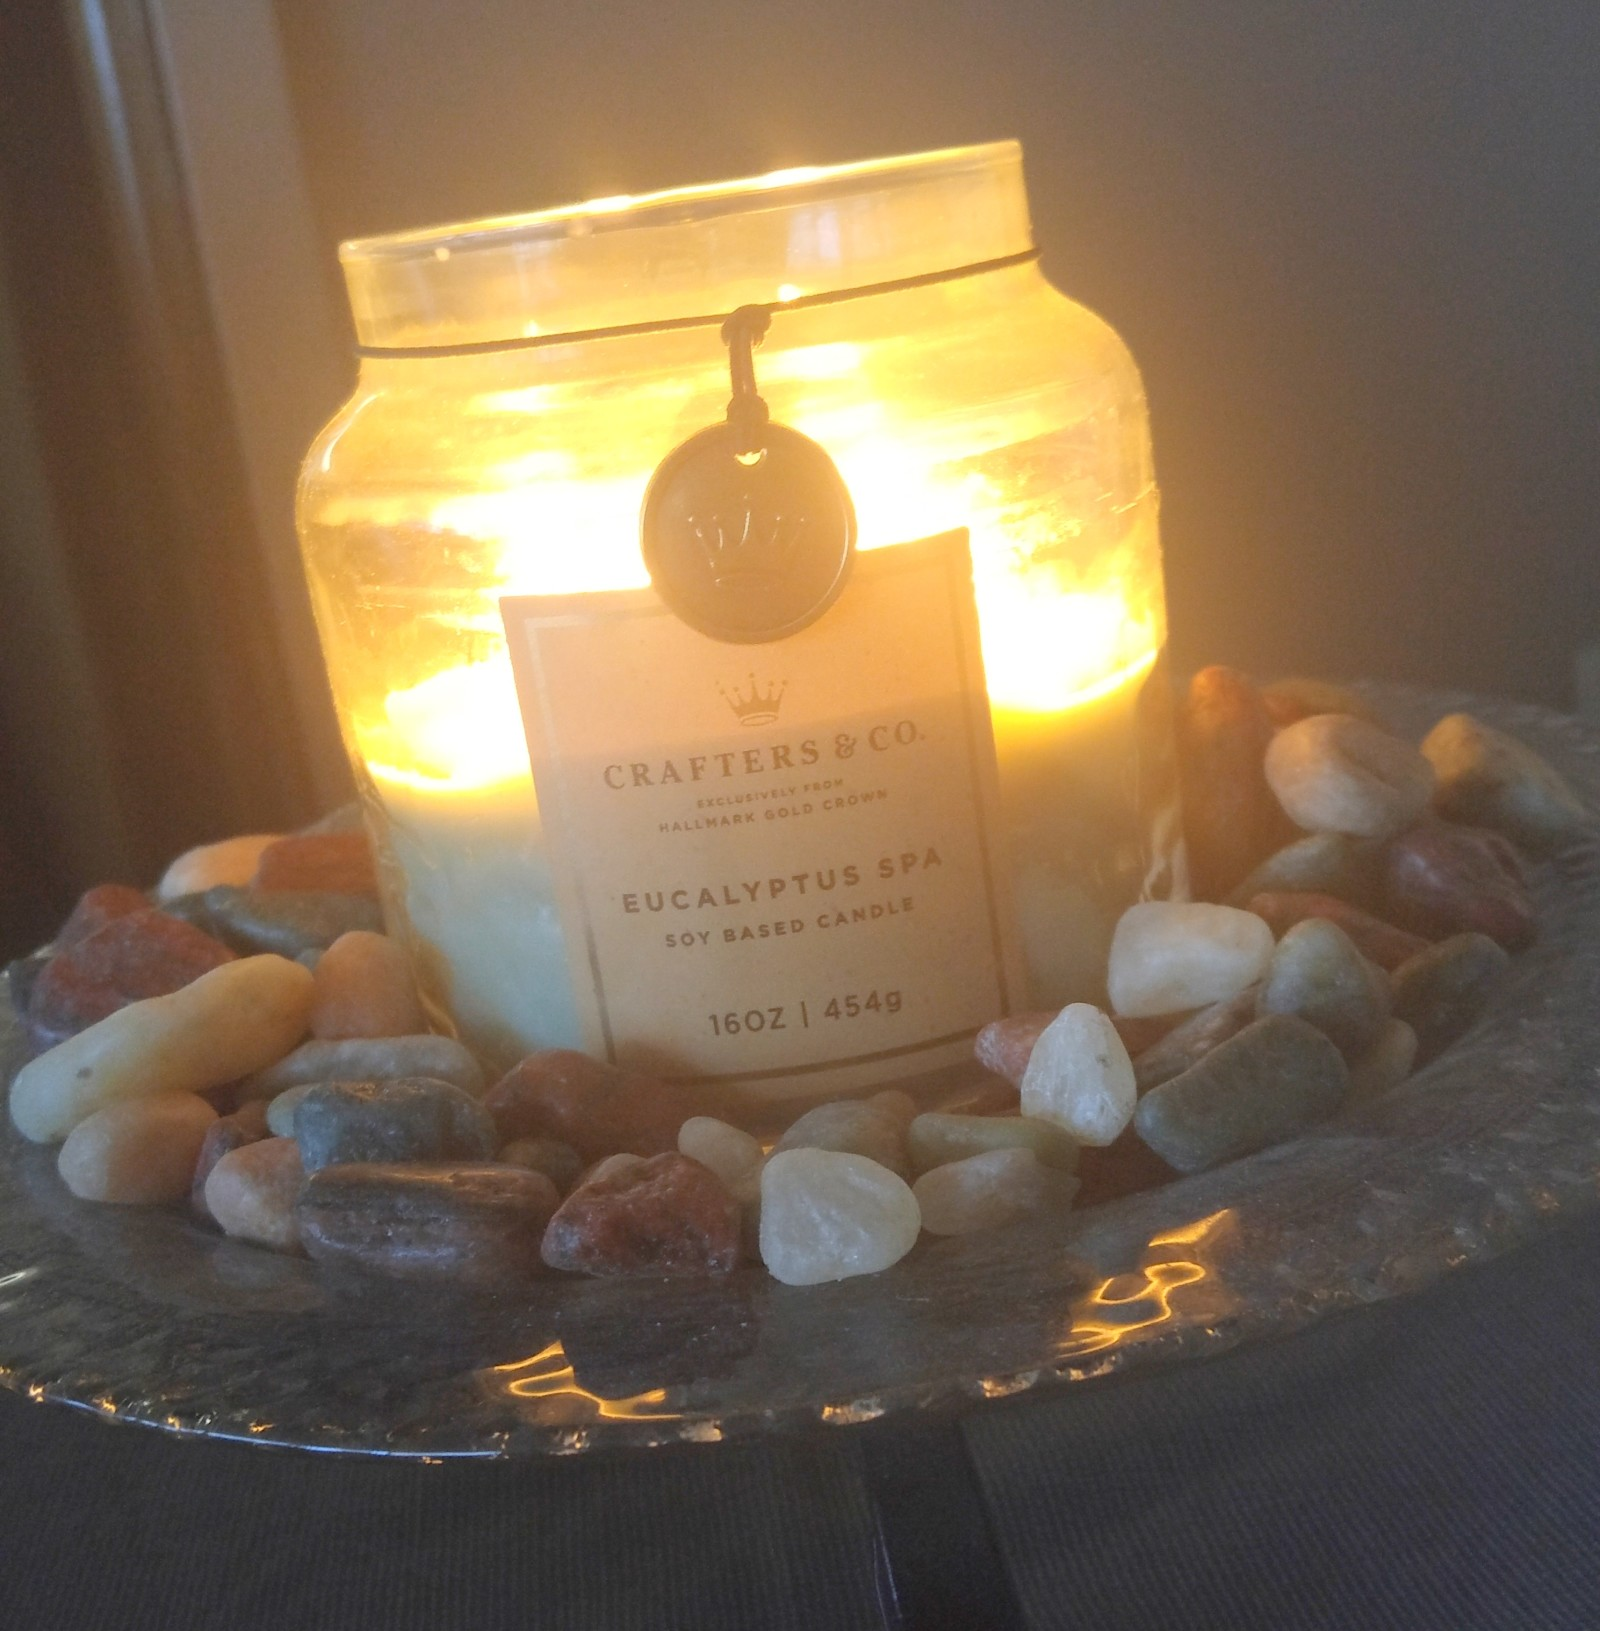 Hallmark Gold Crown Crafters Co Candle Review